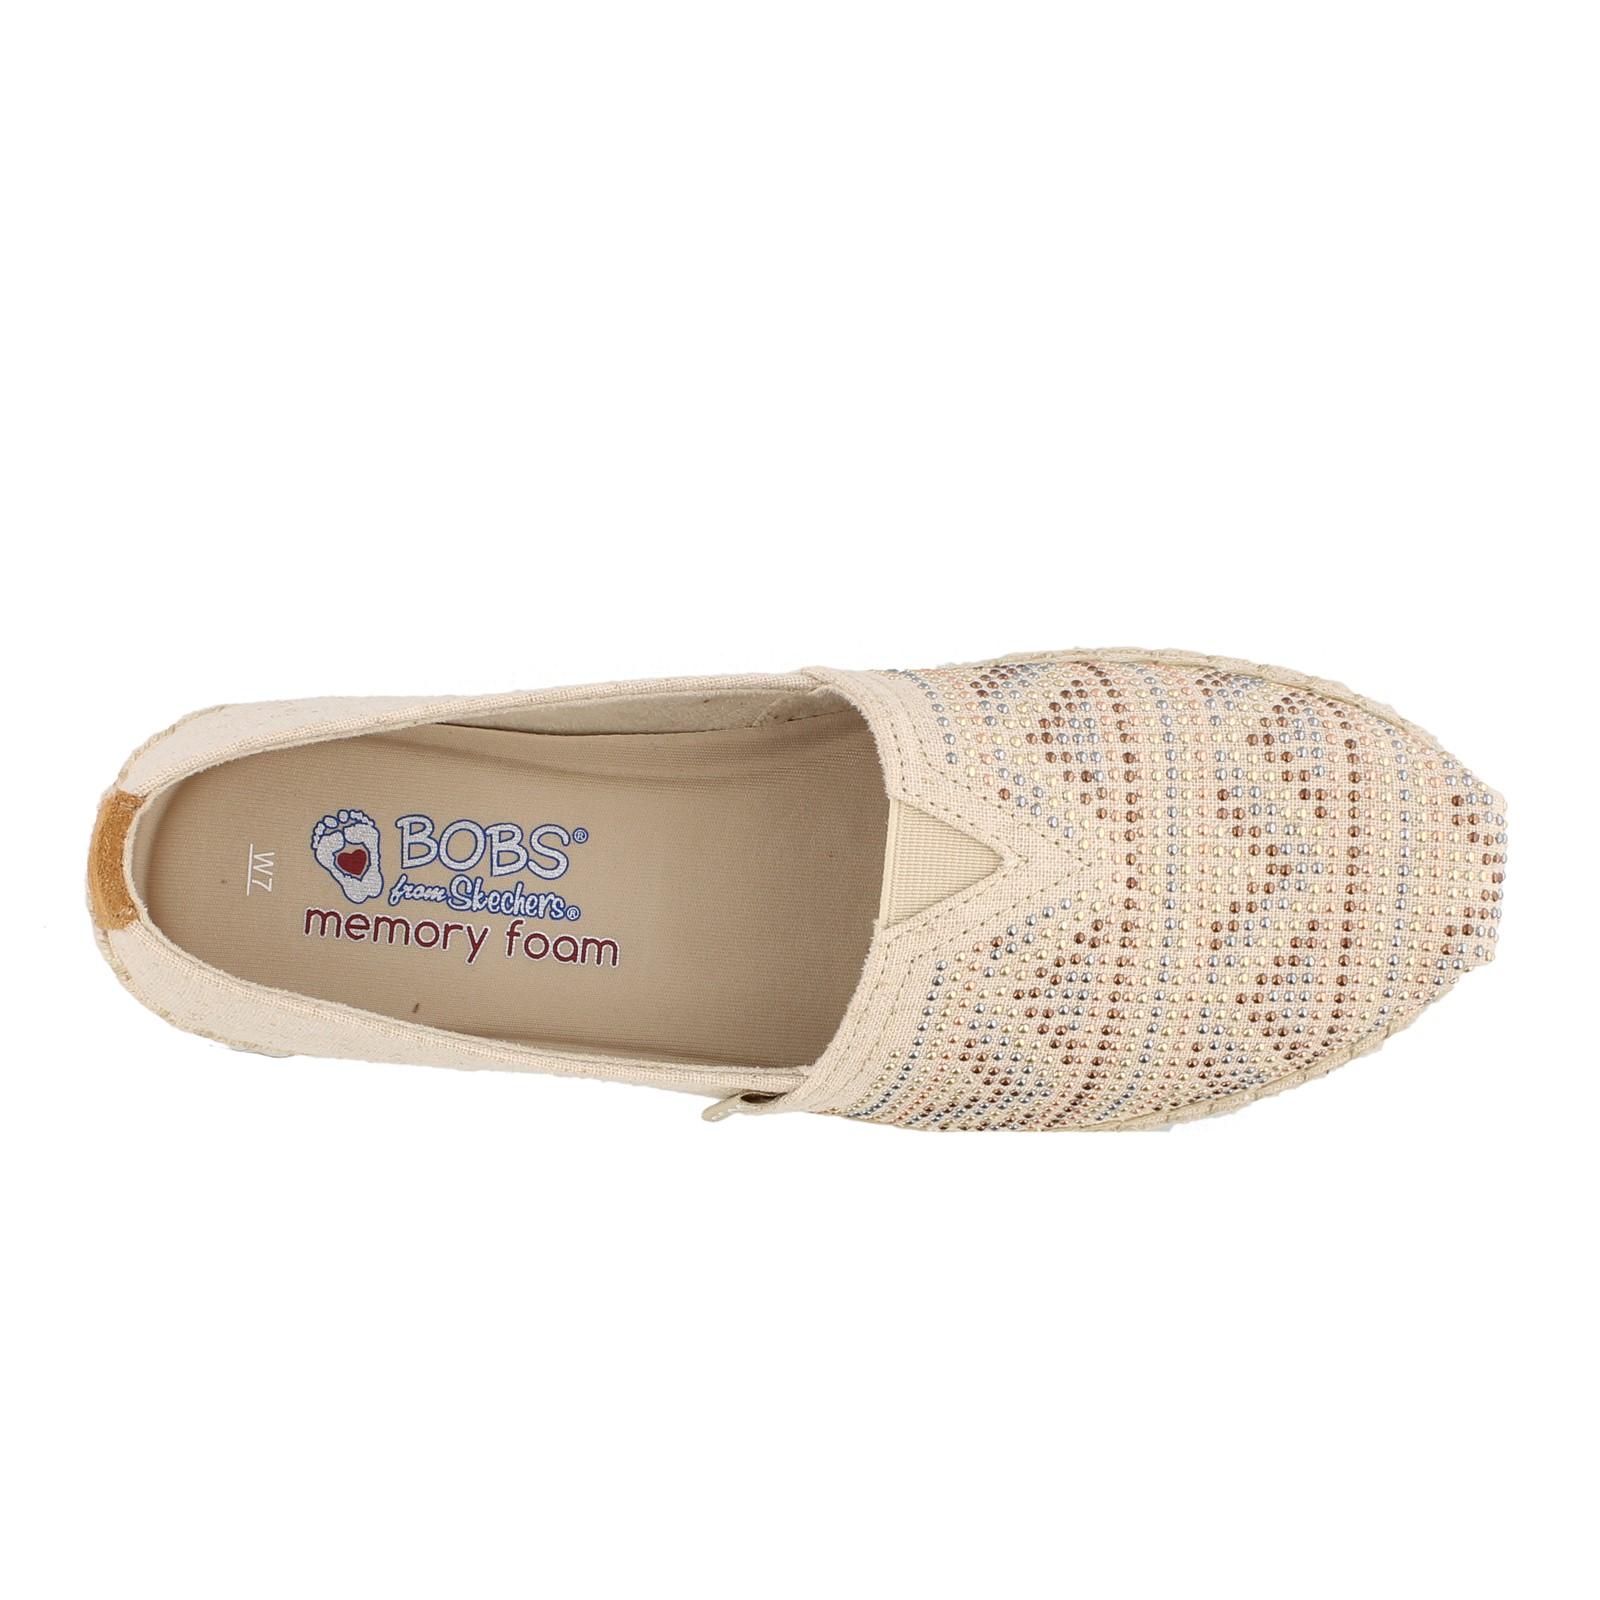 dce53b437828a Next. add to favorites. Women's Skechers, BOBS Breeze - Moonbeams and Stars